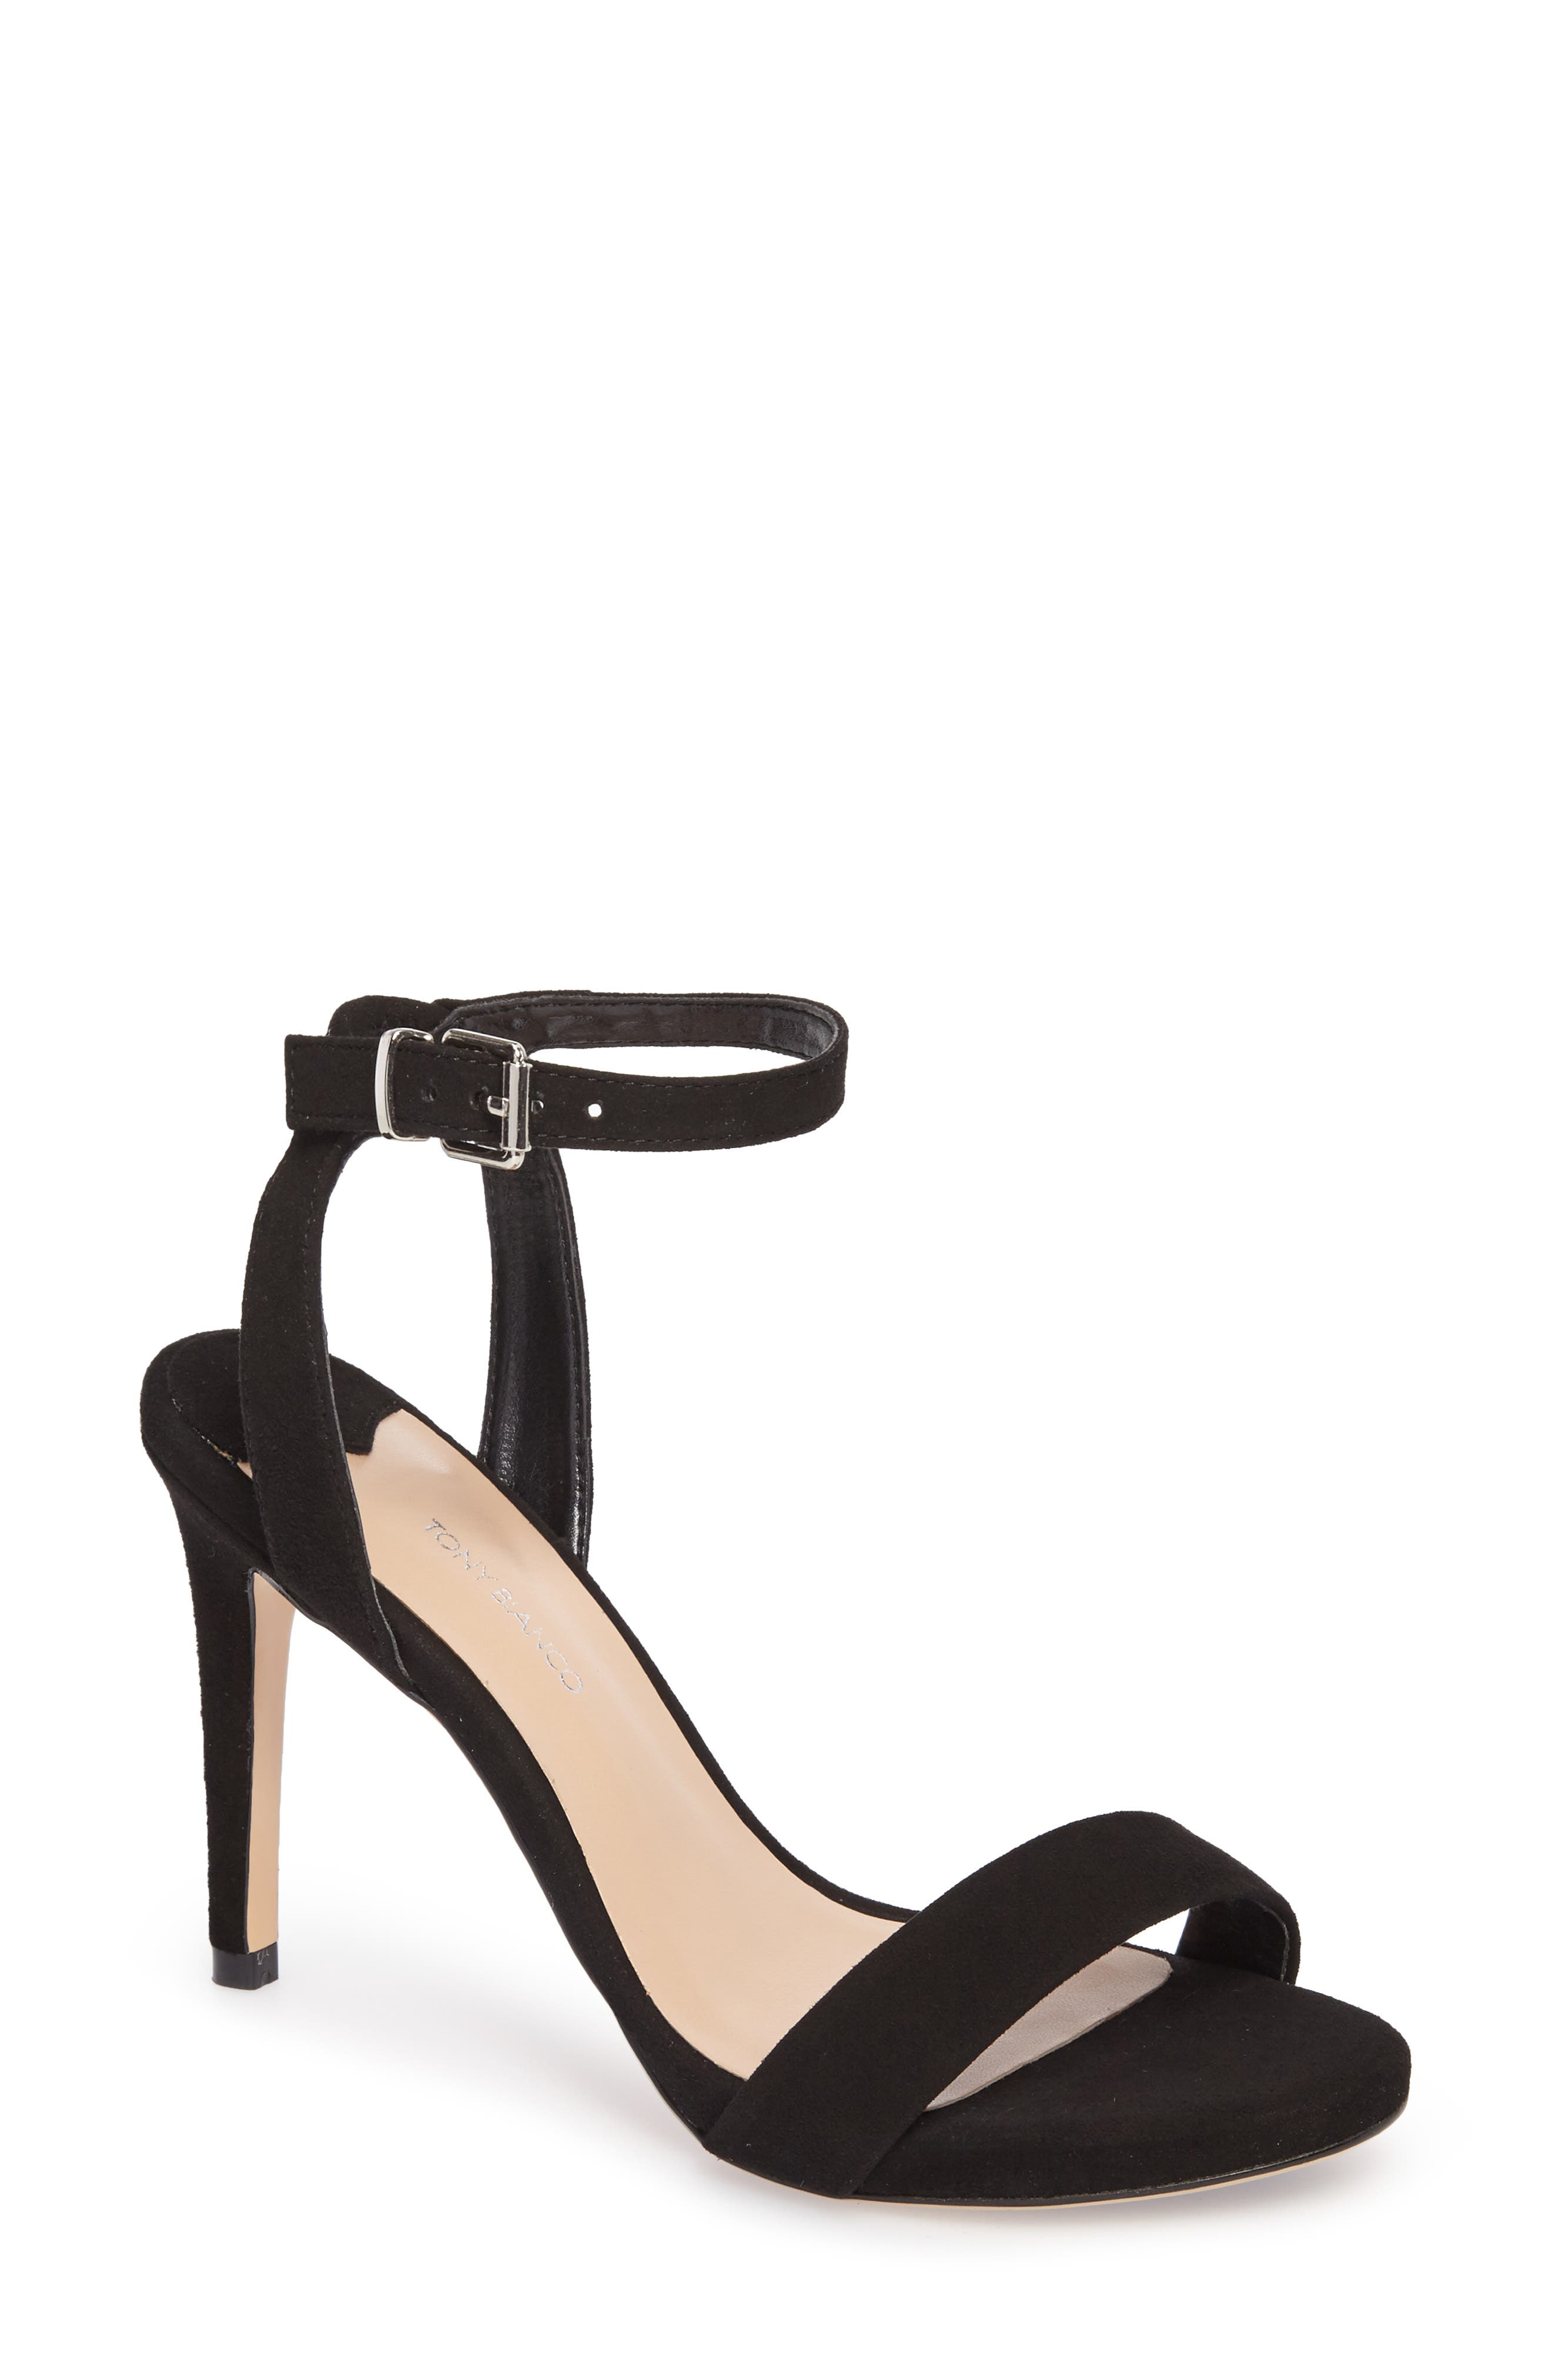 TONY BIANCO Char Ankle Cuff Sandal, Main, color, 001